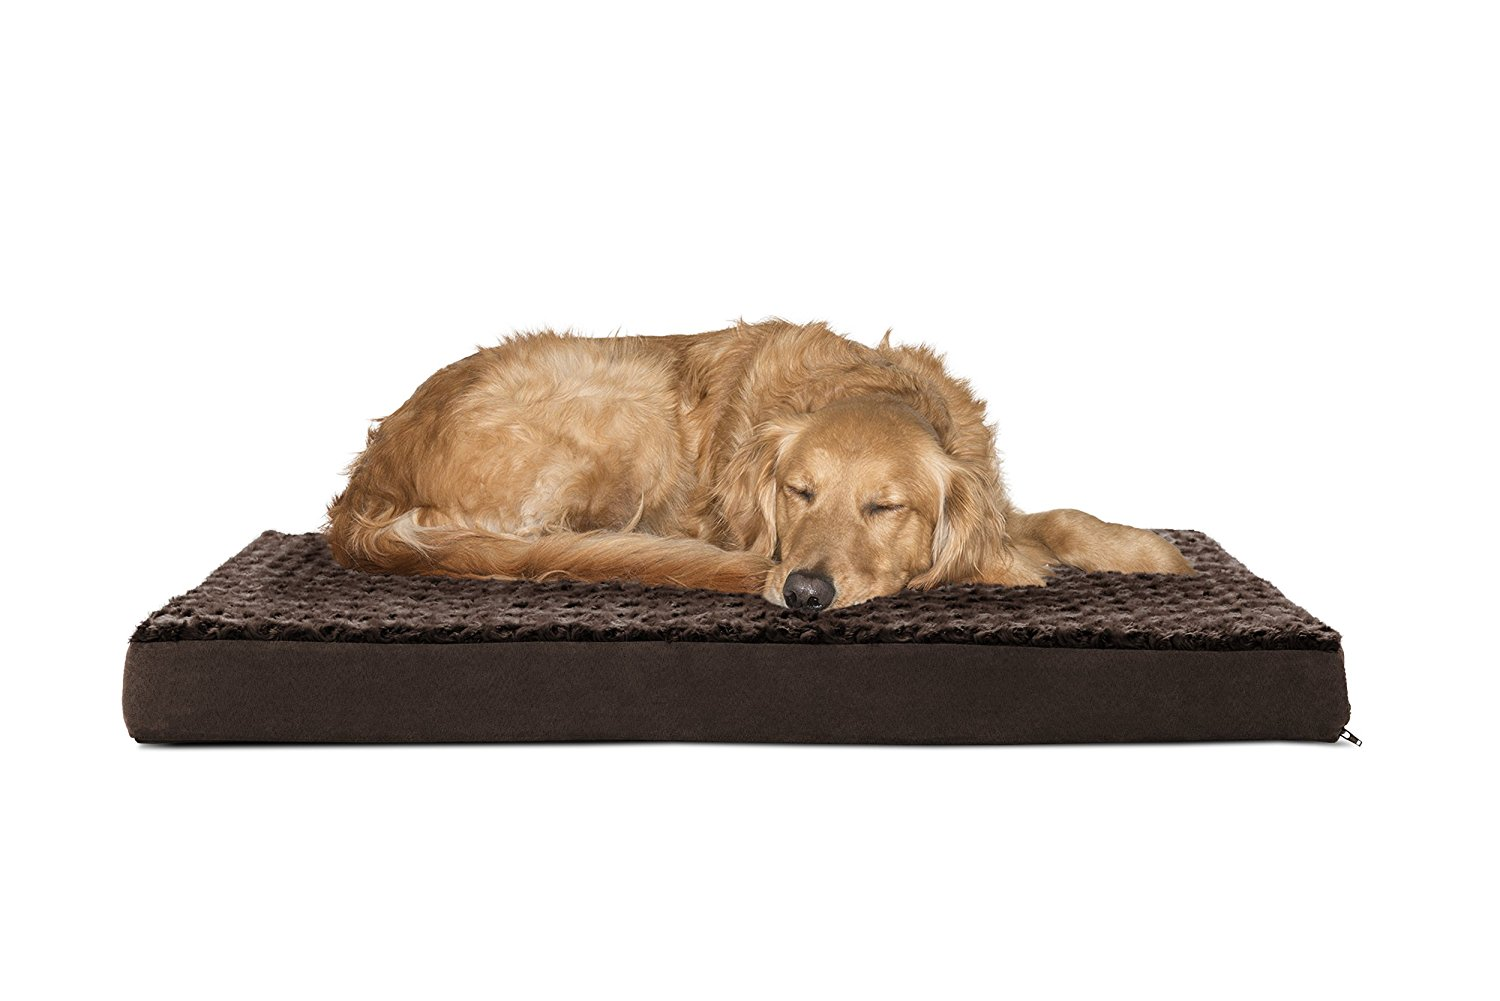 10.-FurHaven-Deluxe-Orthopedic-Pet-Bed-Mattress-for-Dogs-and-Cats-Available-in-Over-25-Colors 10 Best Beds for Large Dogs